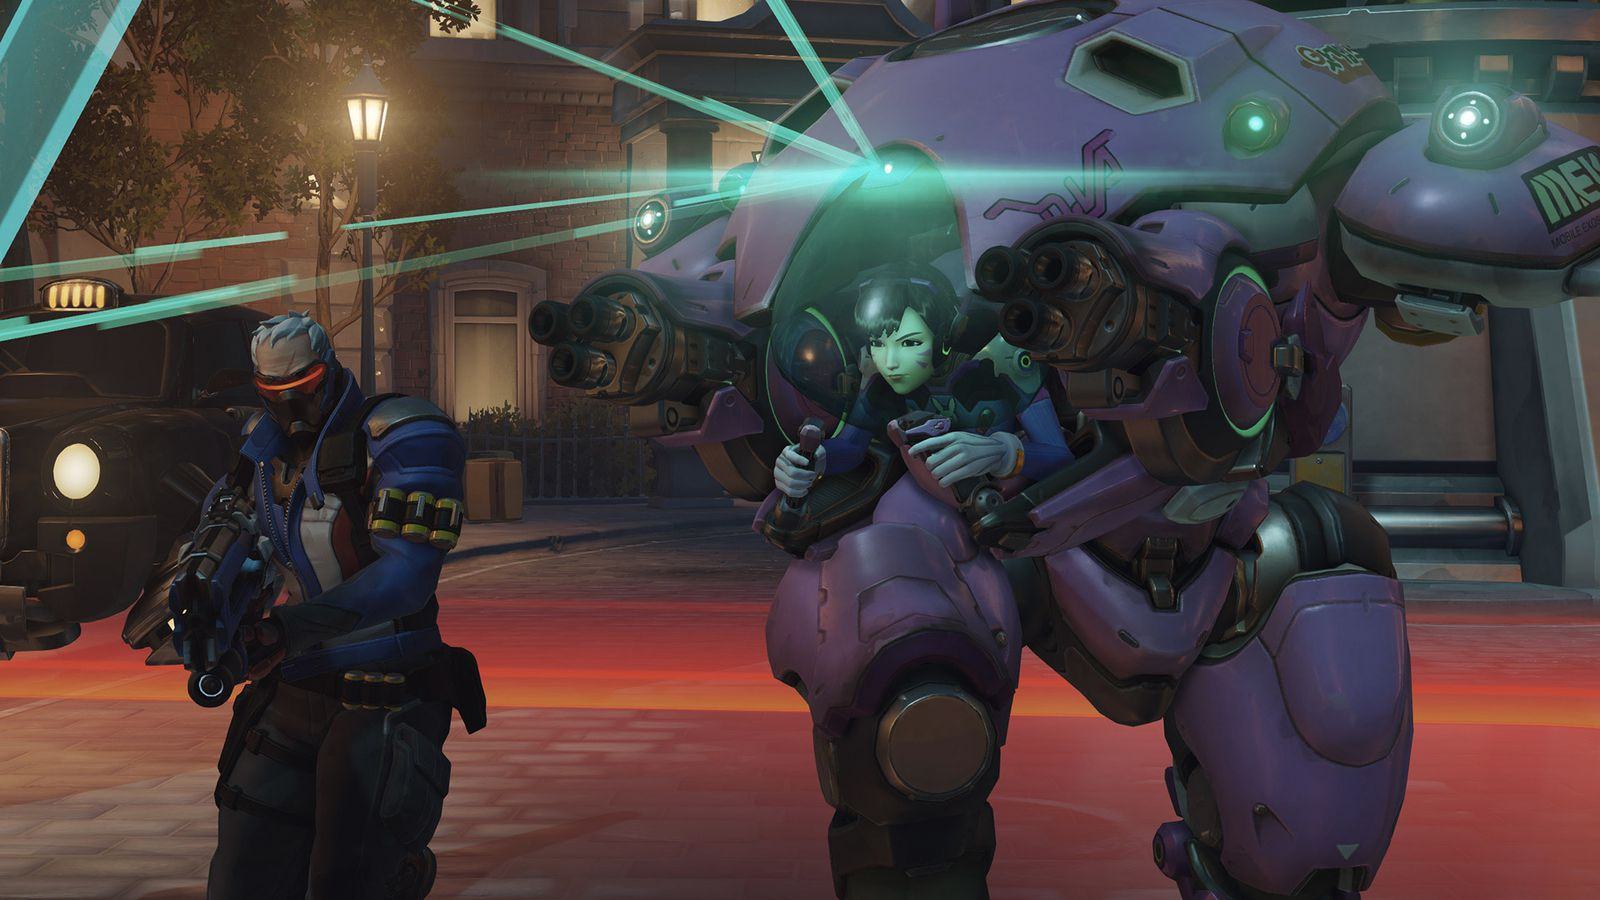 Blizzard embraces 'Gremlin D.Va' with new Overwatch emote